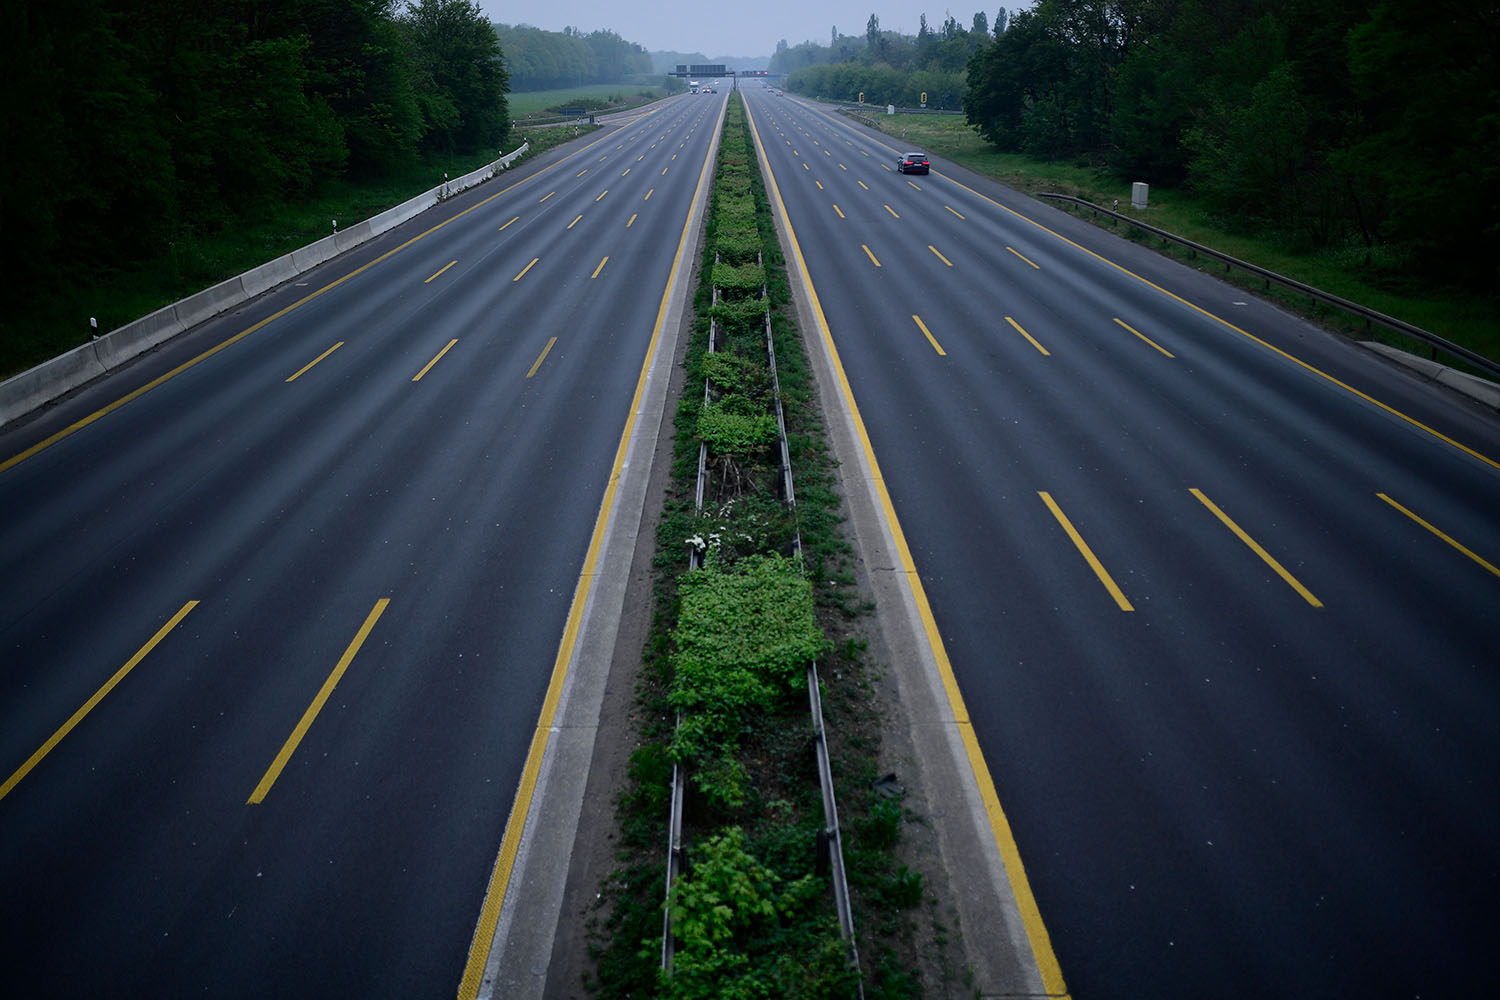 The nearly empty A3 highway near Leverkusen, western Germany, on April 19 amid the pandemic.